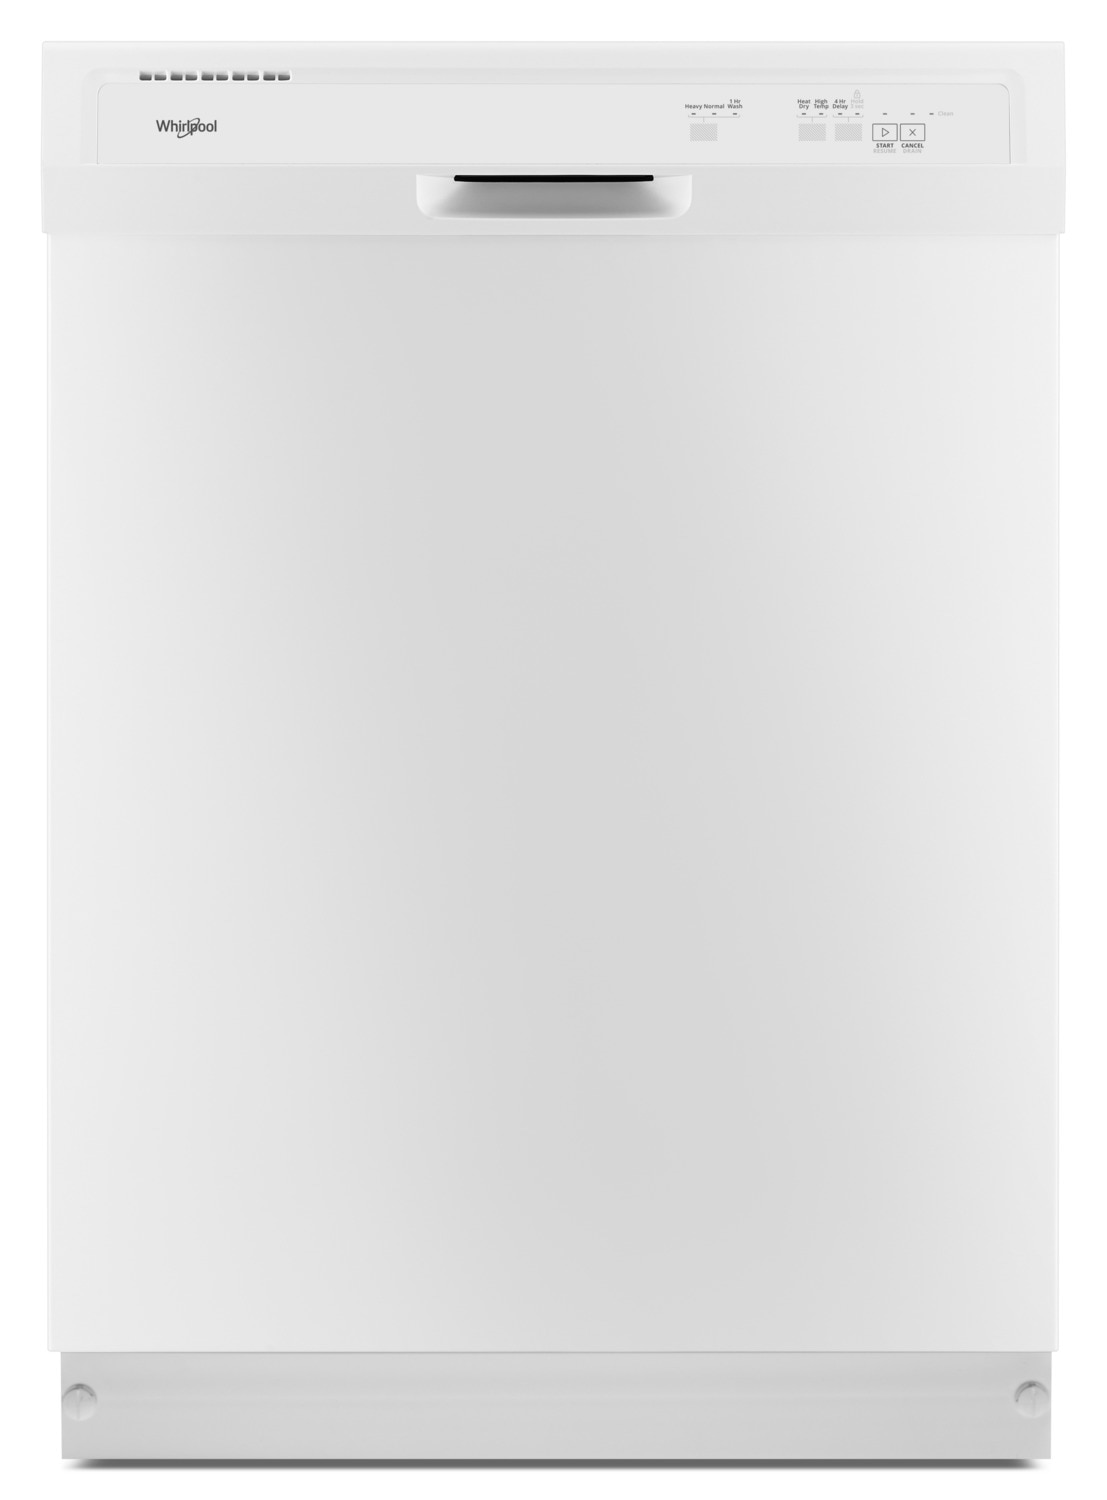 Whirlpool® Heavy-Duty Dishwasher with One-Hour Wash Cycle – WDF330PAHW